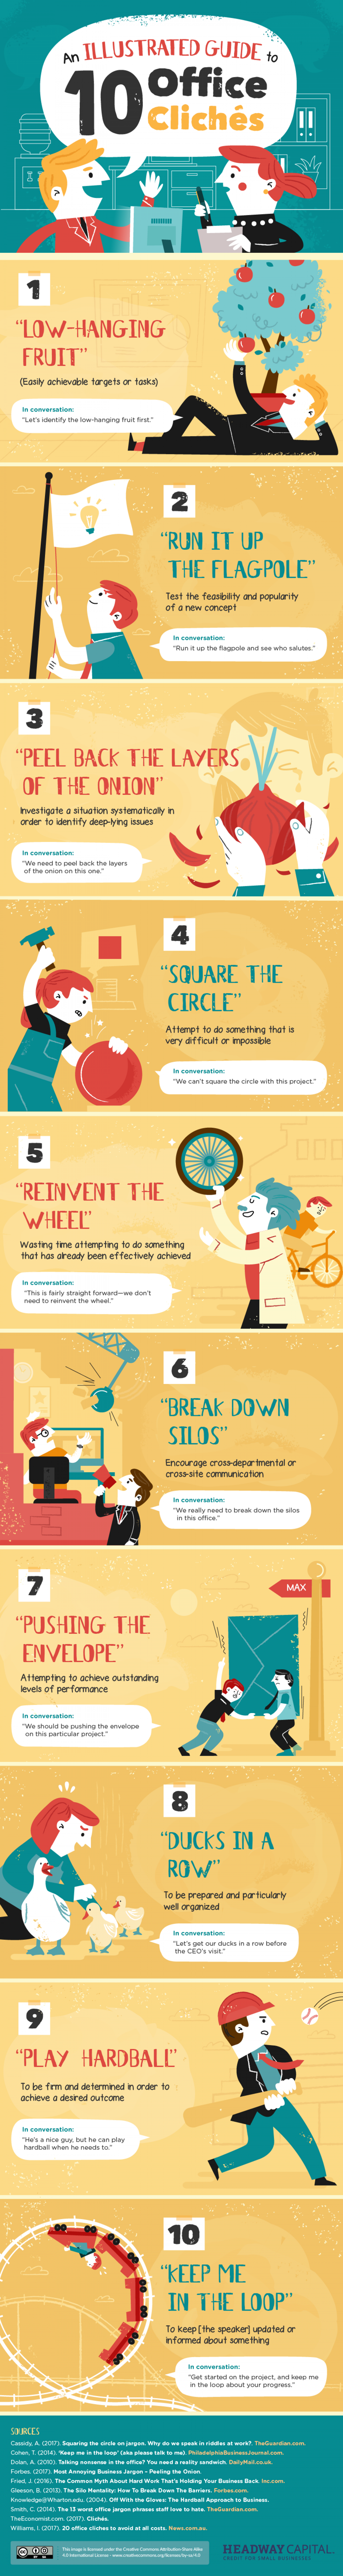 Office Cliches: An Illustrated Guide Infographic